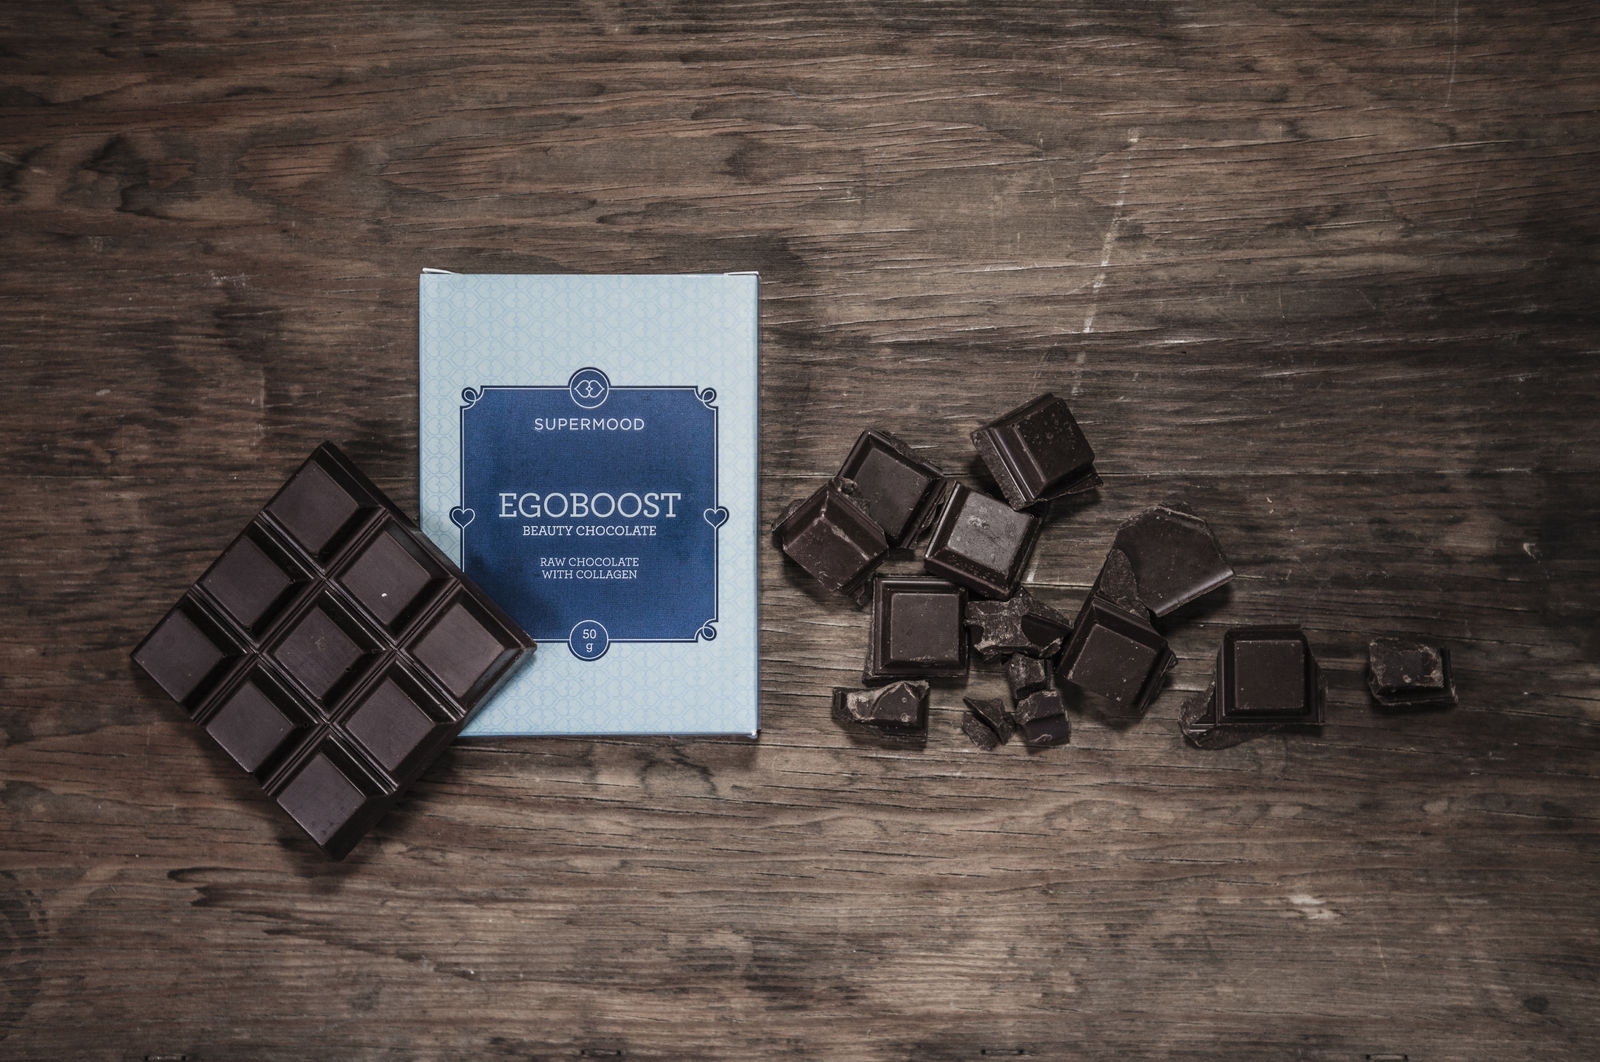 Egoboost: 'Beauty Chocolate', raw chocolate with collagen.